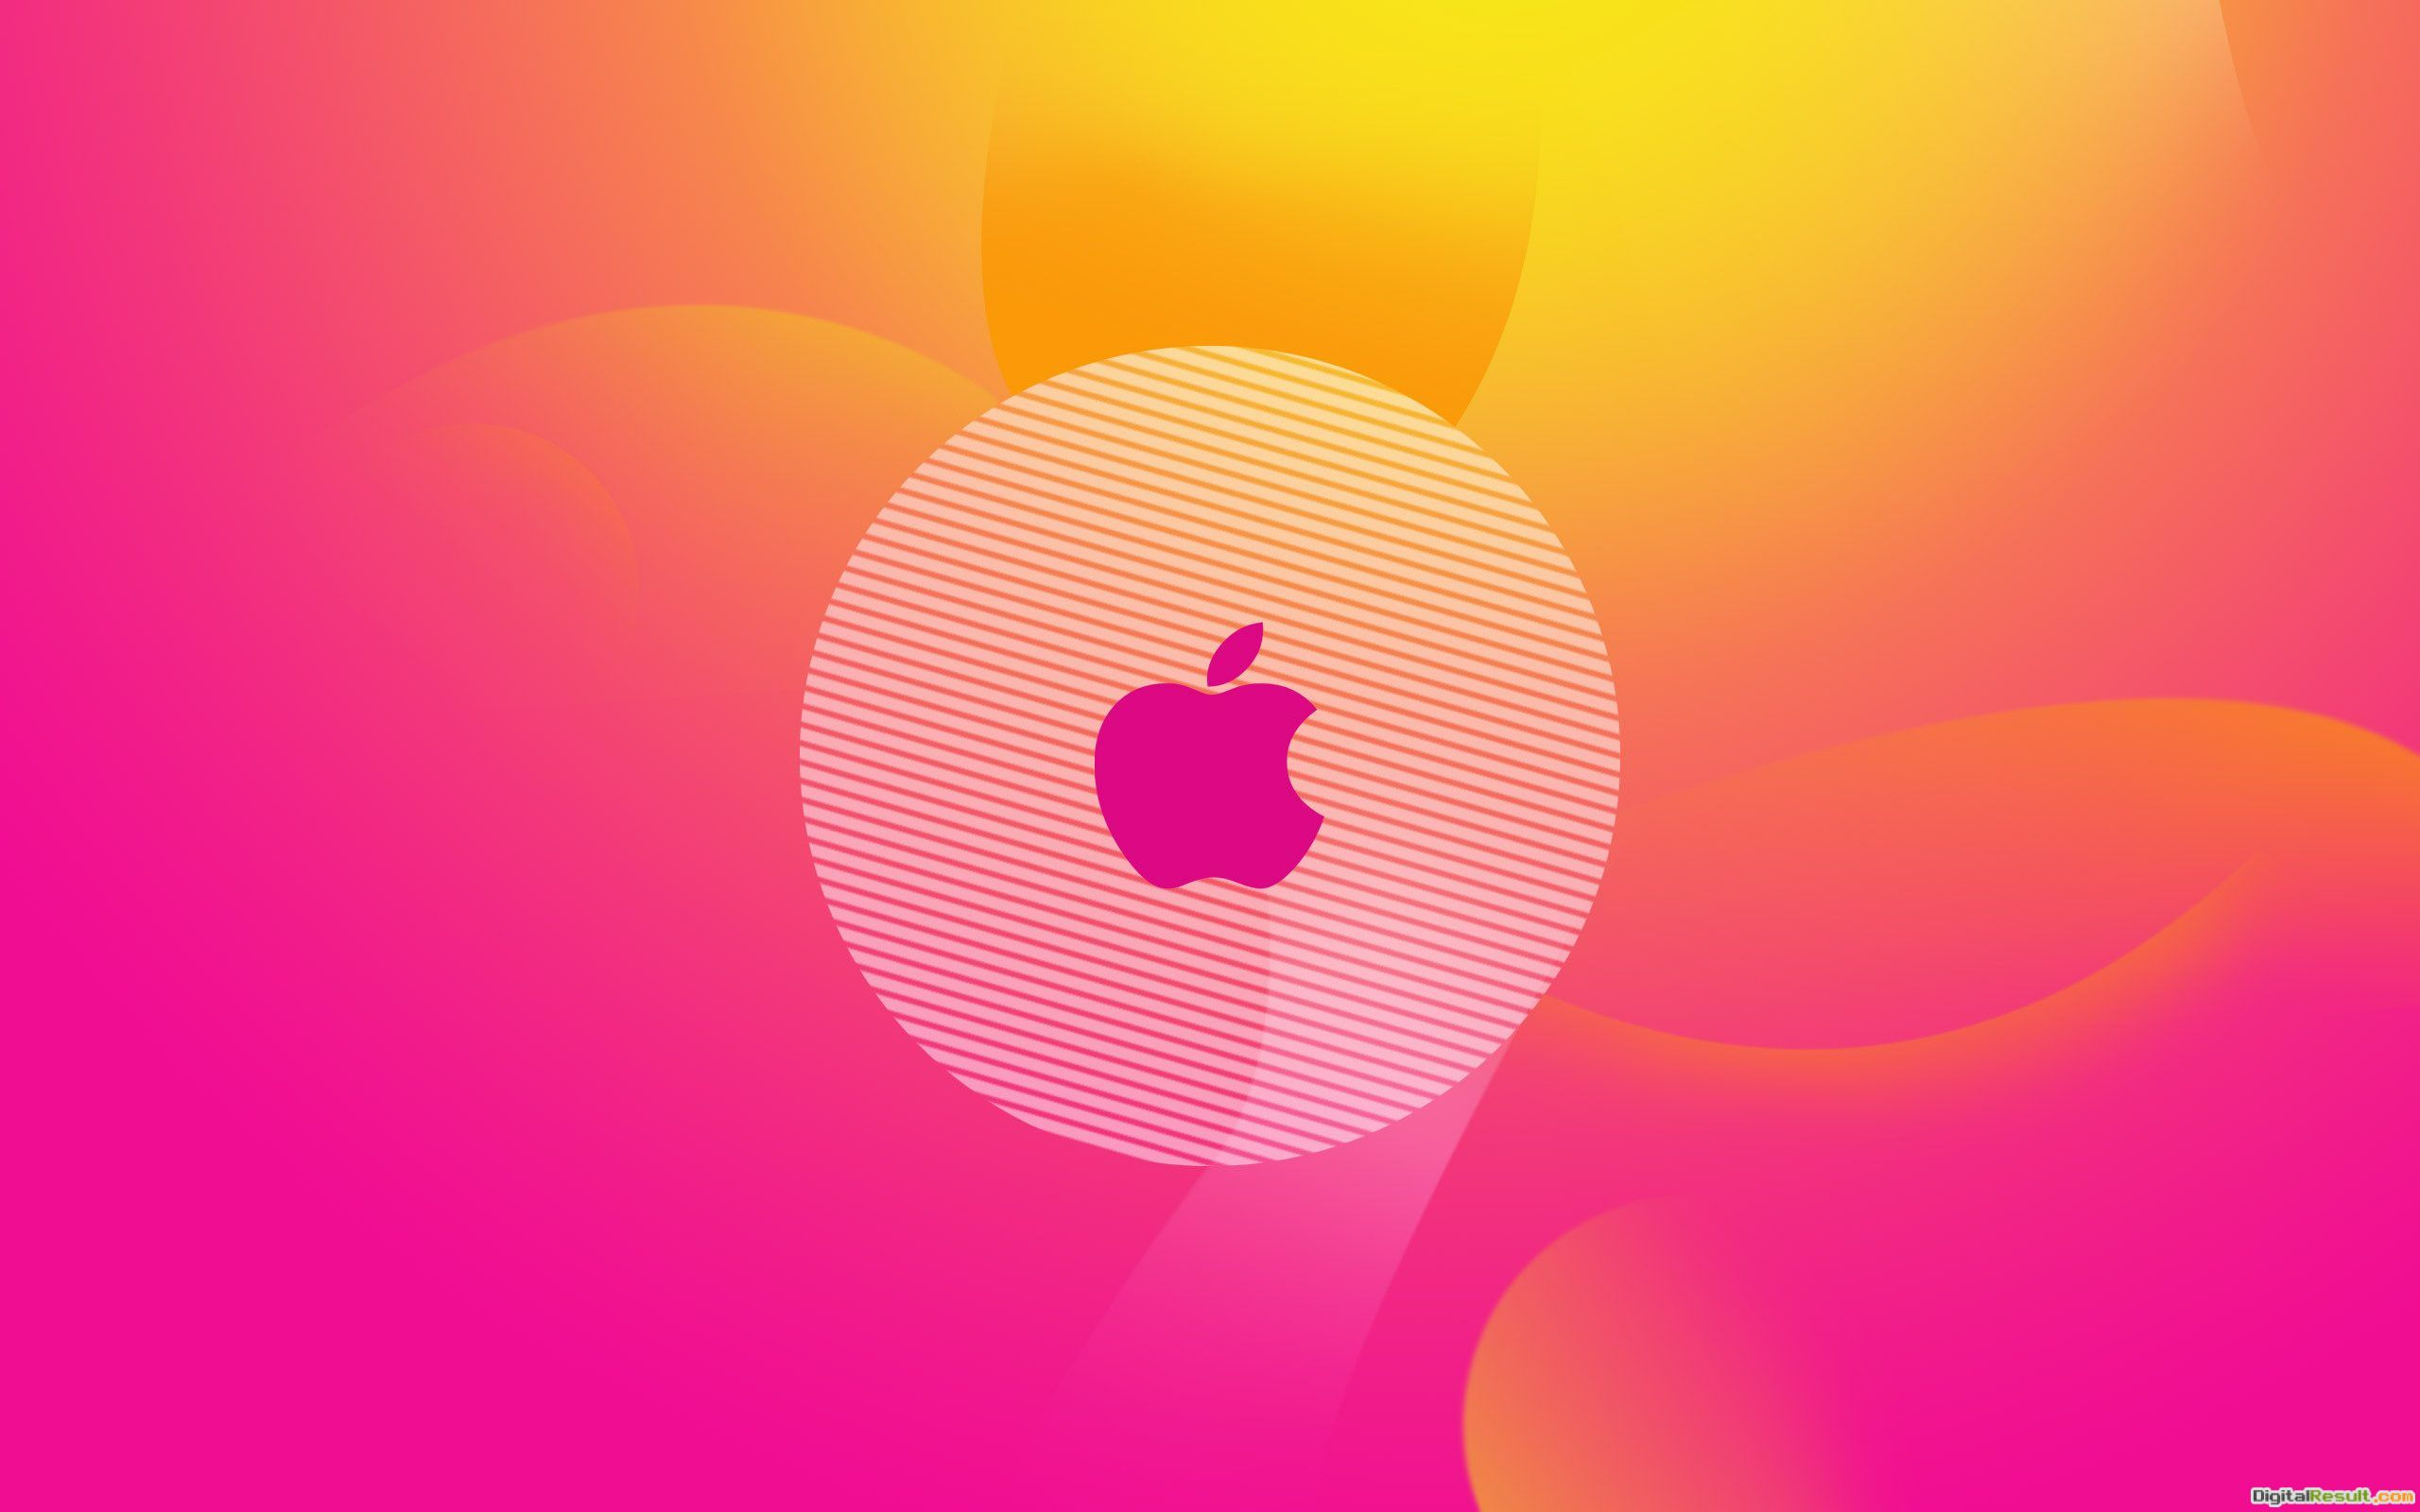 Cool image of the apple logo, picture of the orange background, pink 834